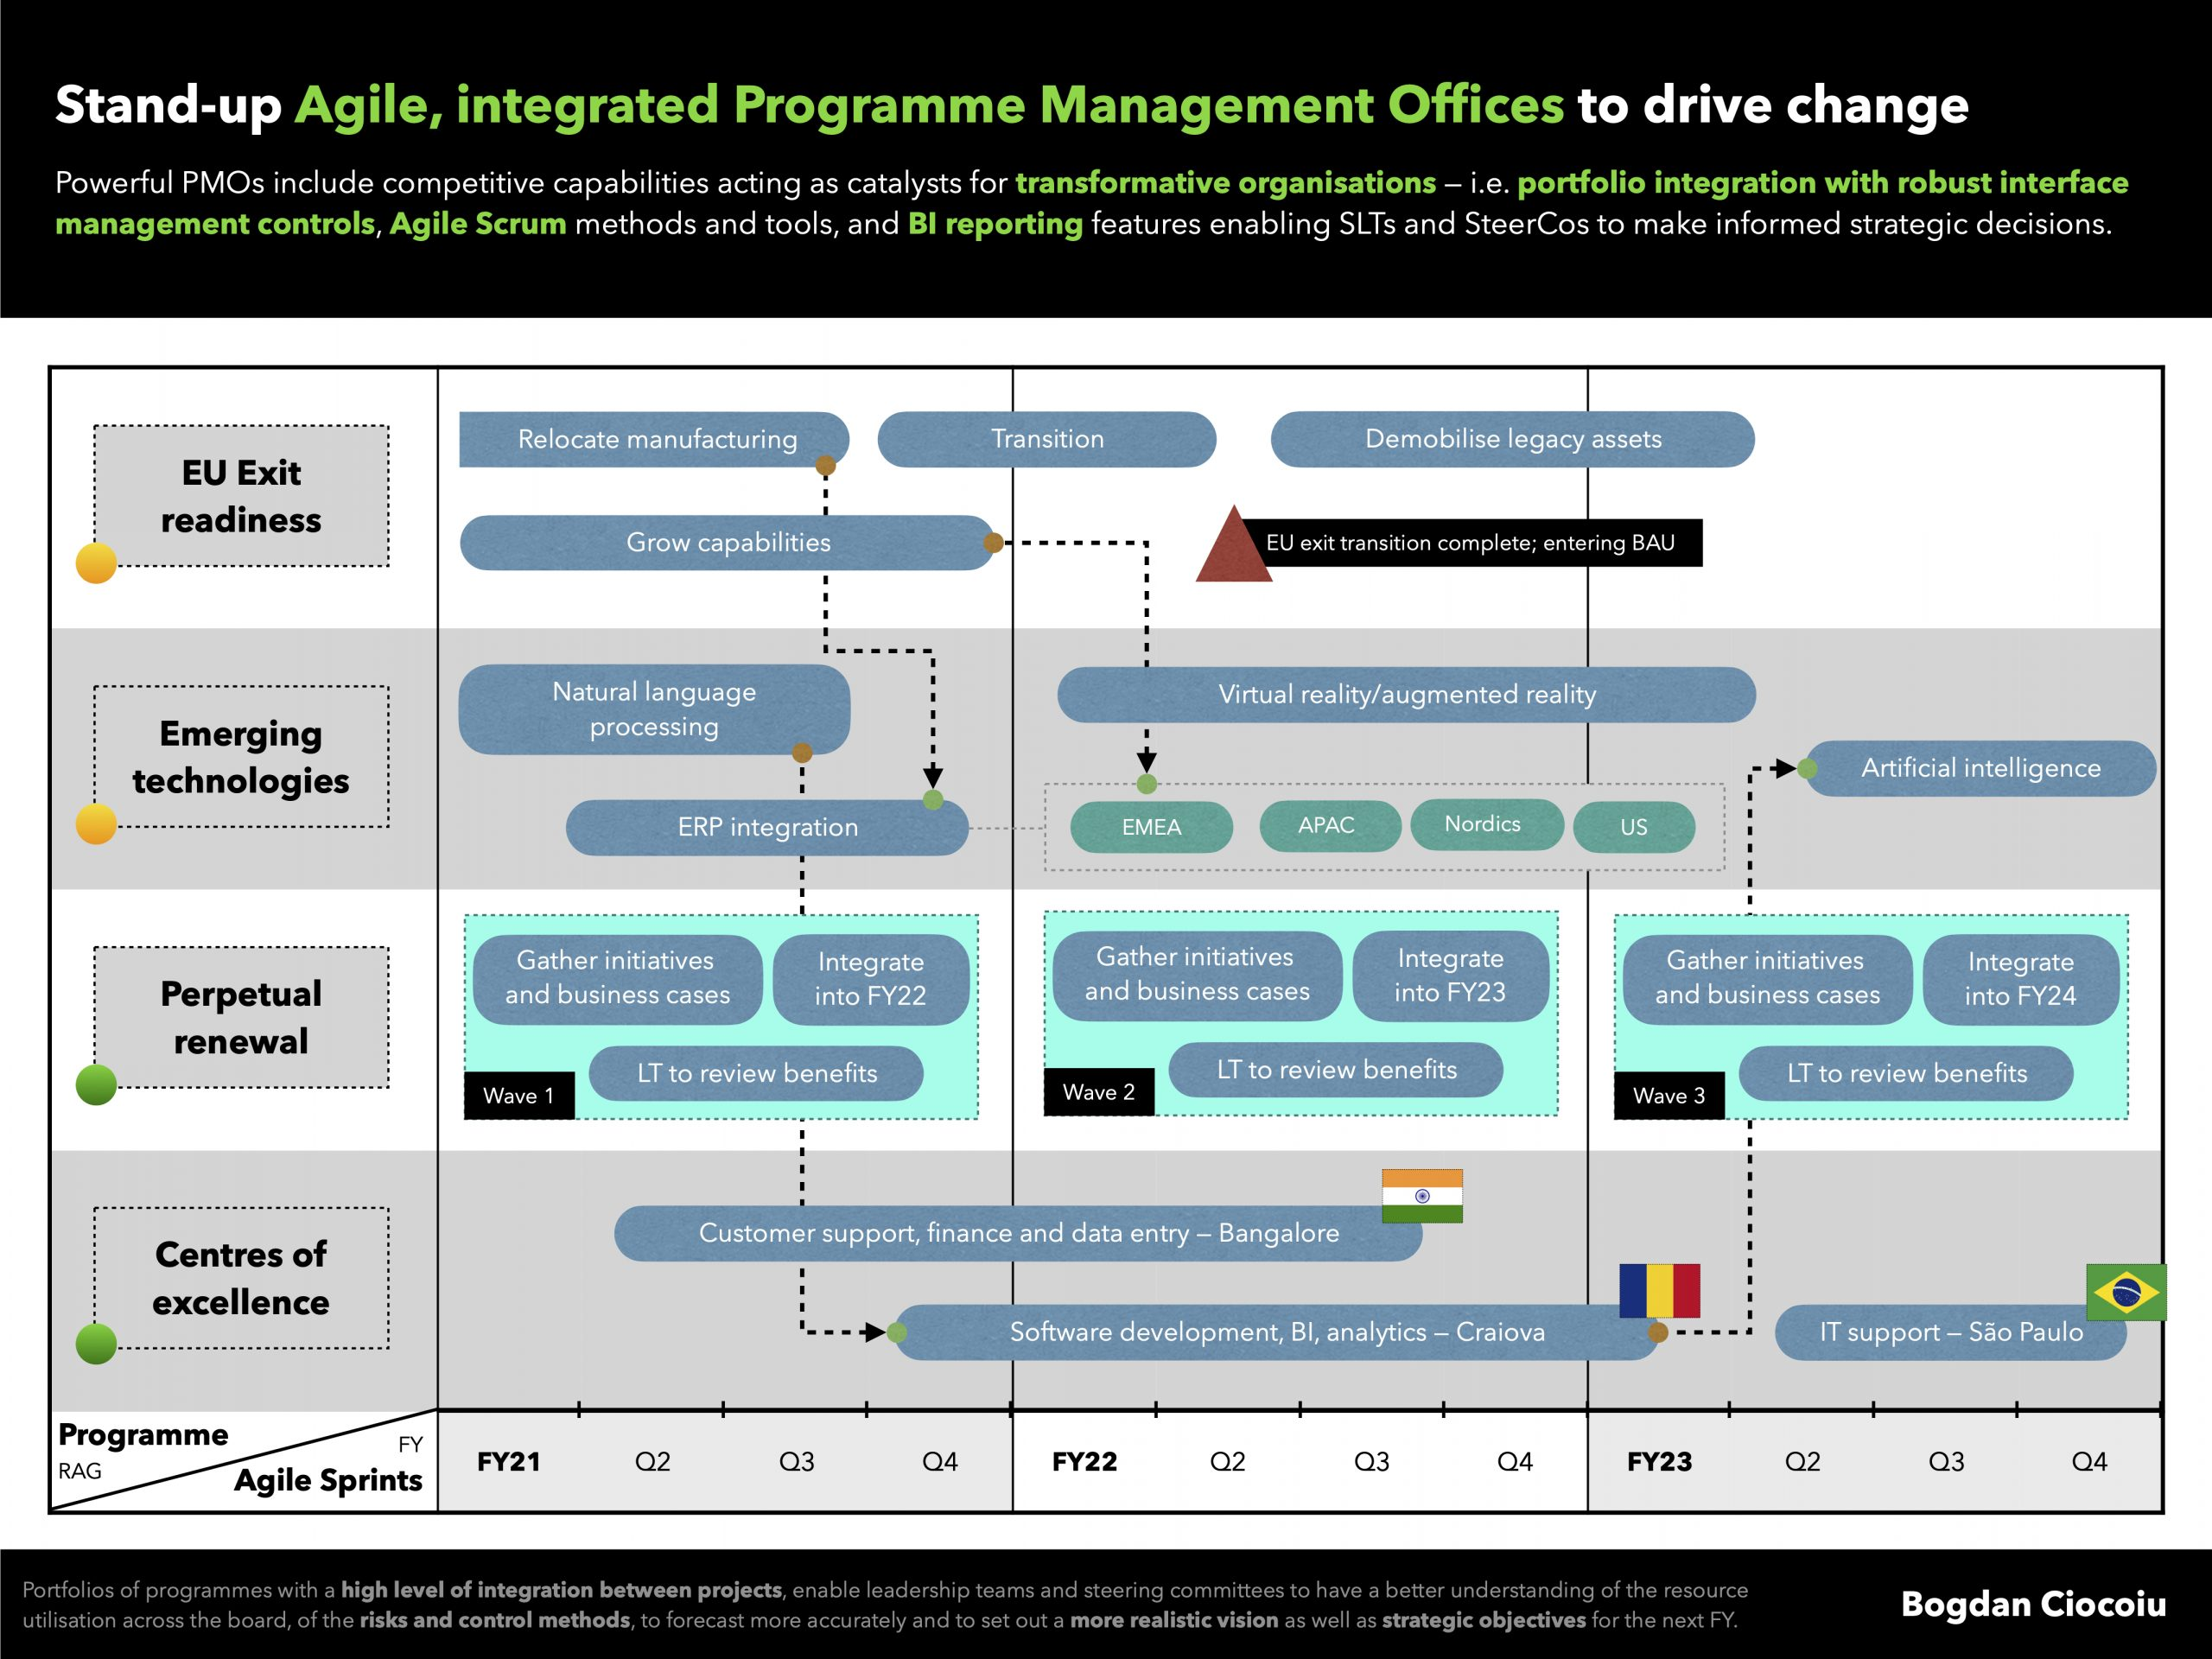 Complexities always emerging from programme portfolio integration